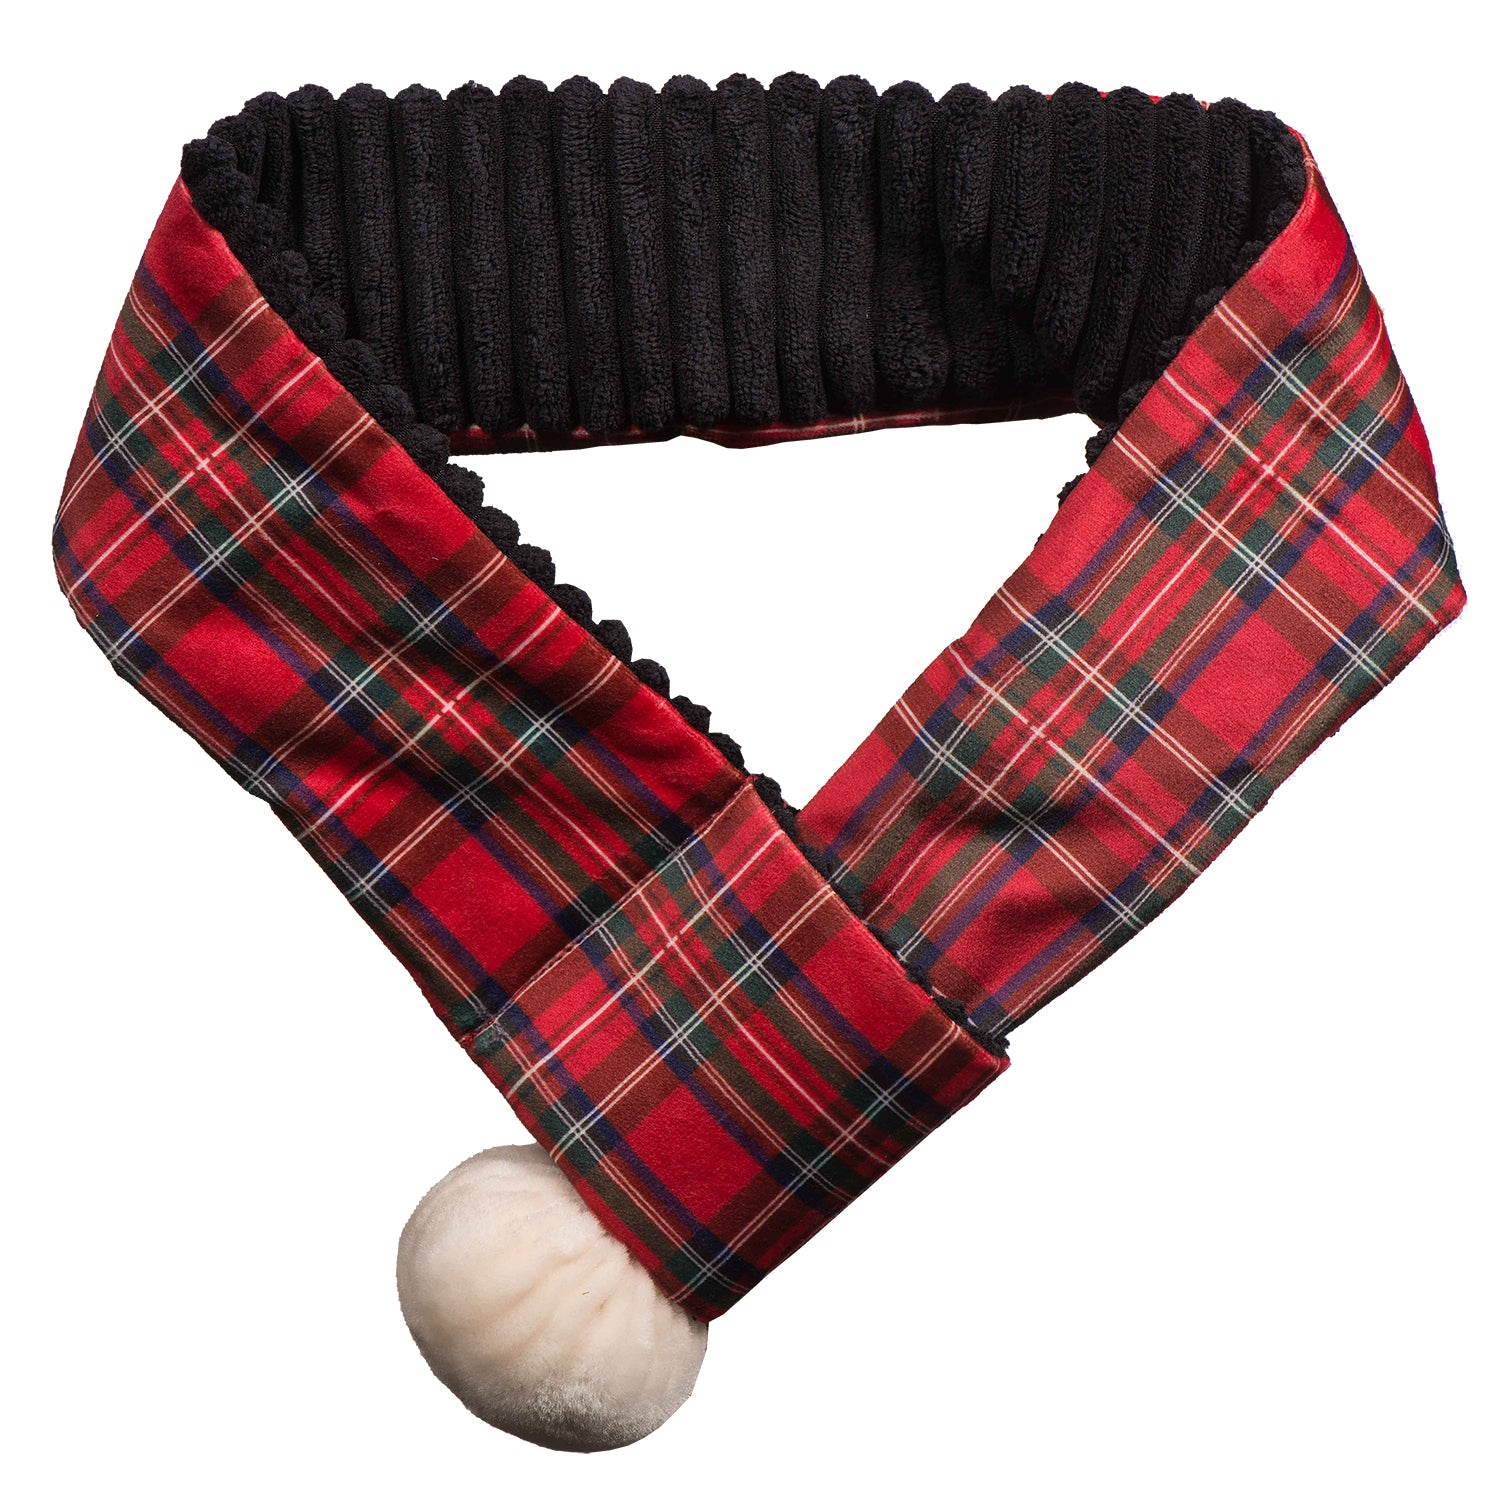 HuggleHounds Holiday 2020 Totally Tartan Scarf - Medium (fits necks 14-18